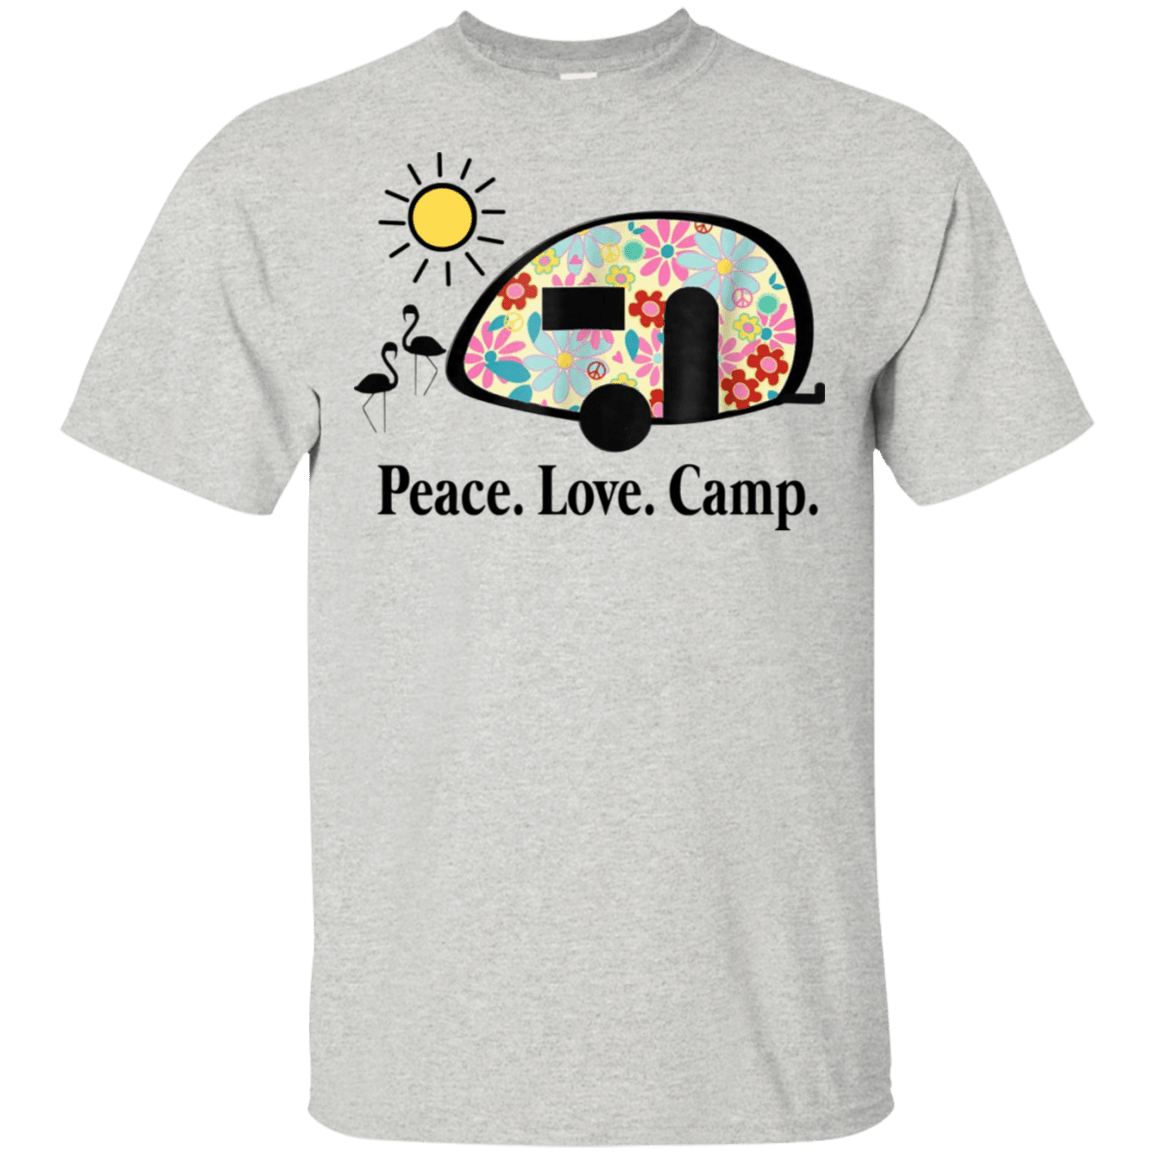 Peace. Love. Camp. Camping 22-2475-73889463-12568 - Tee Ript